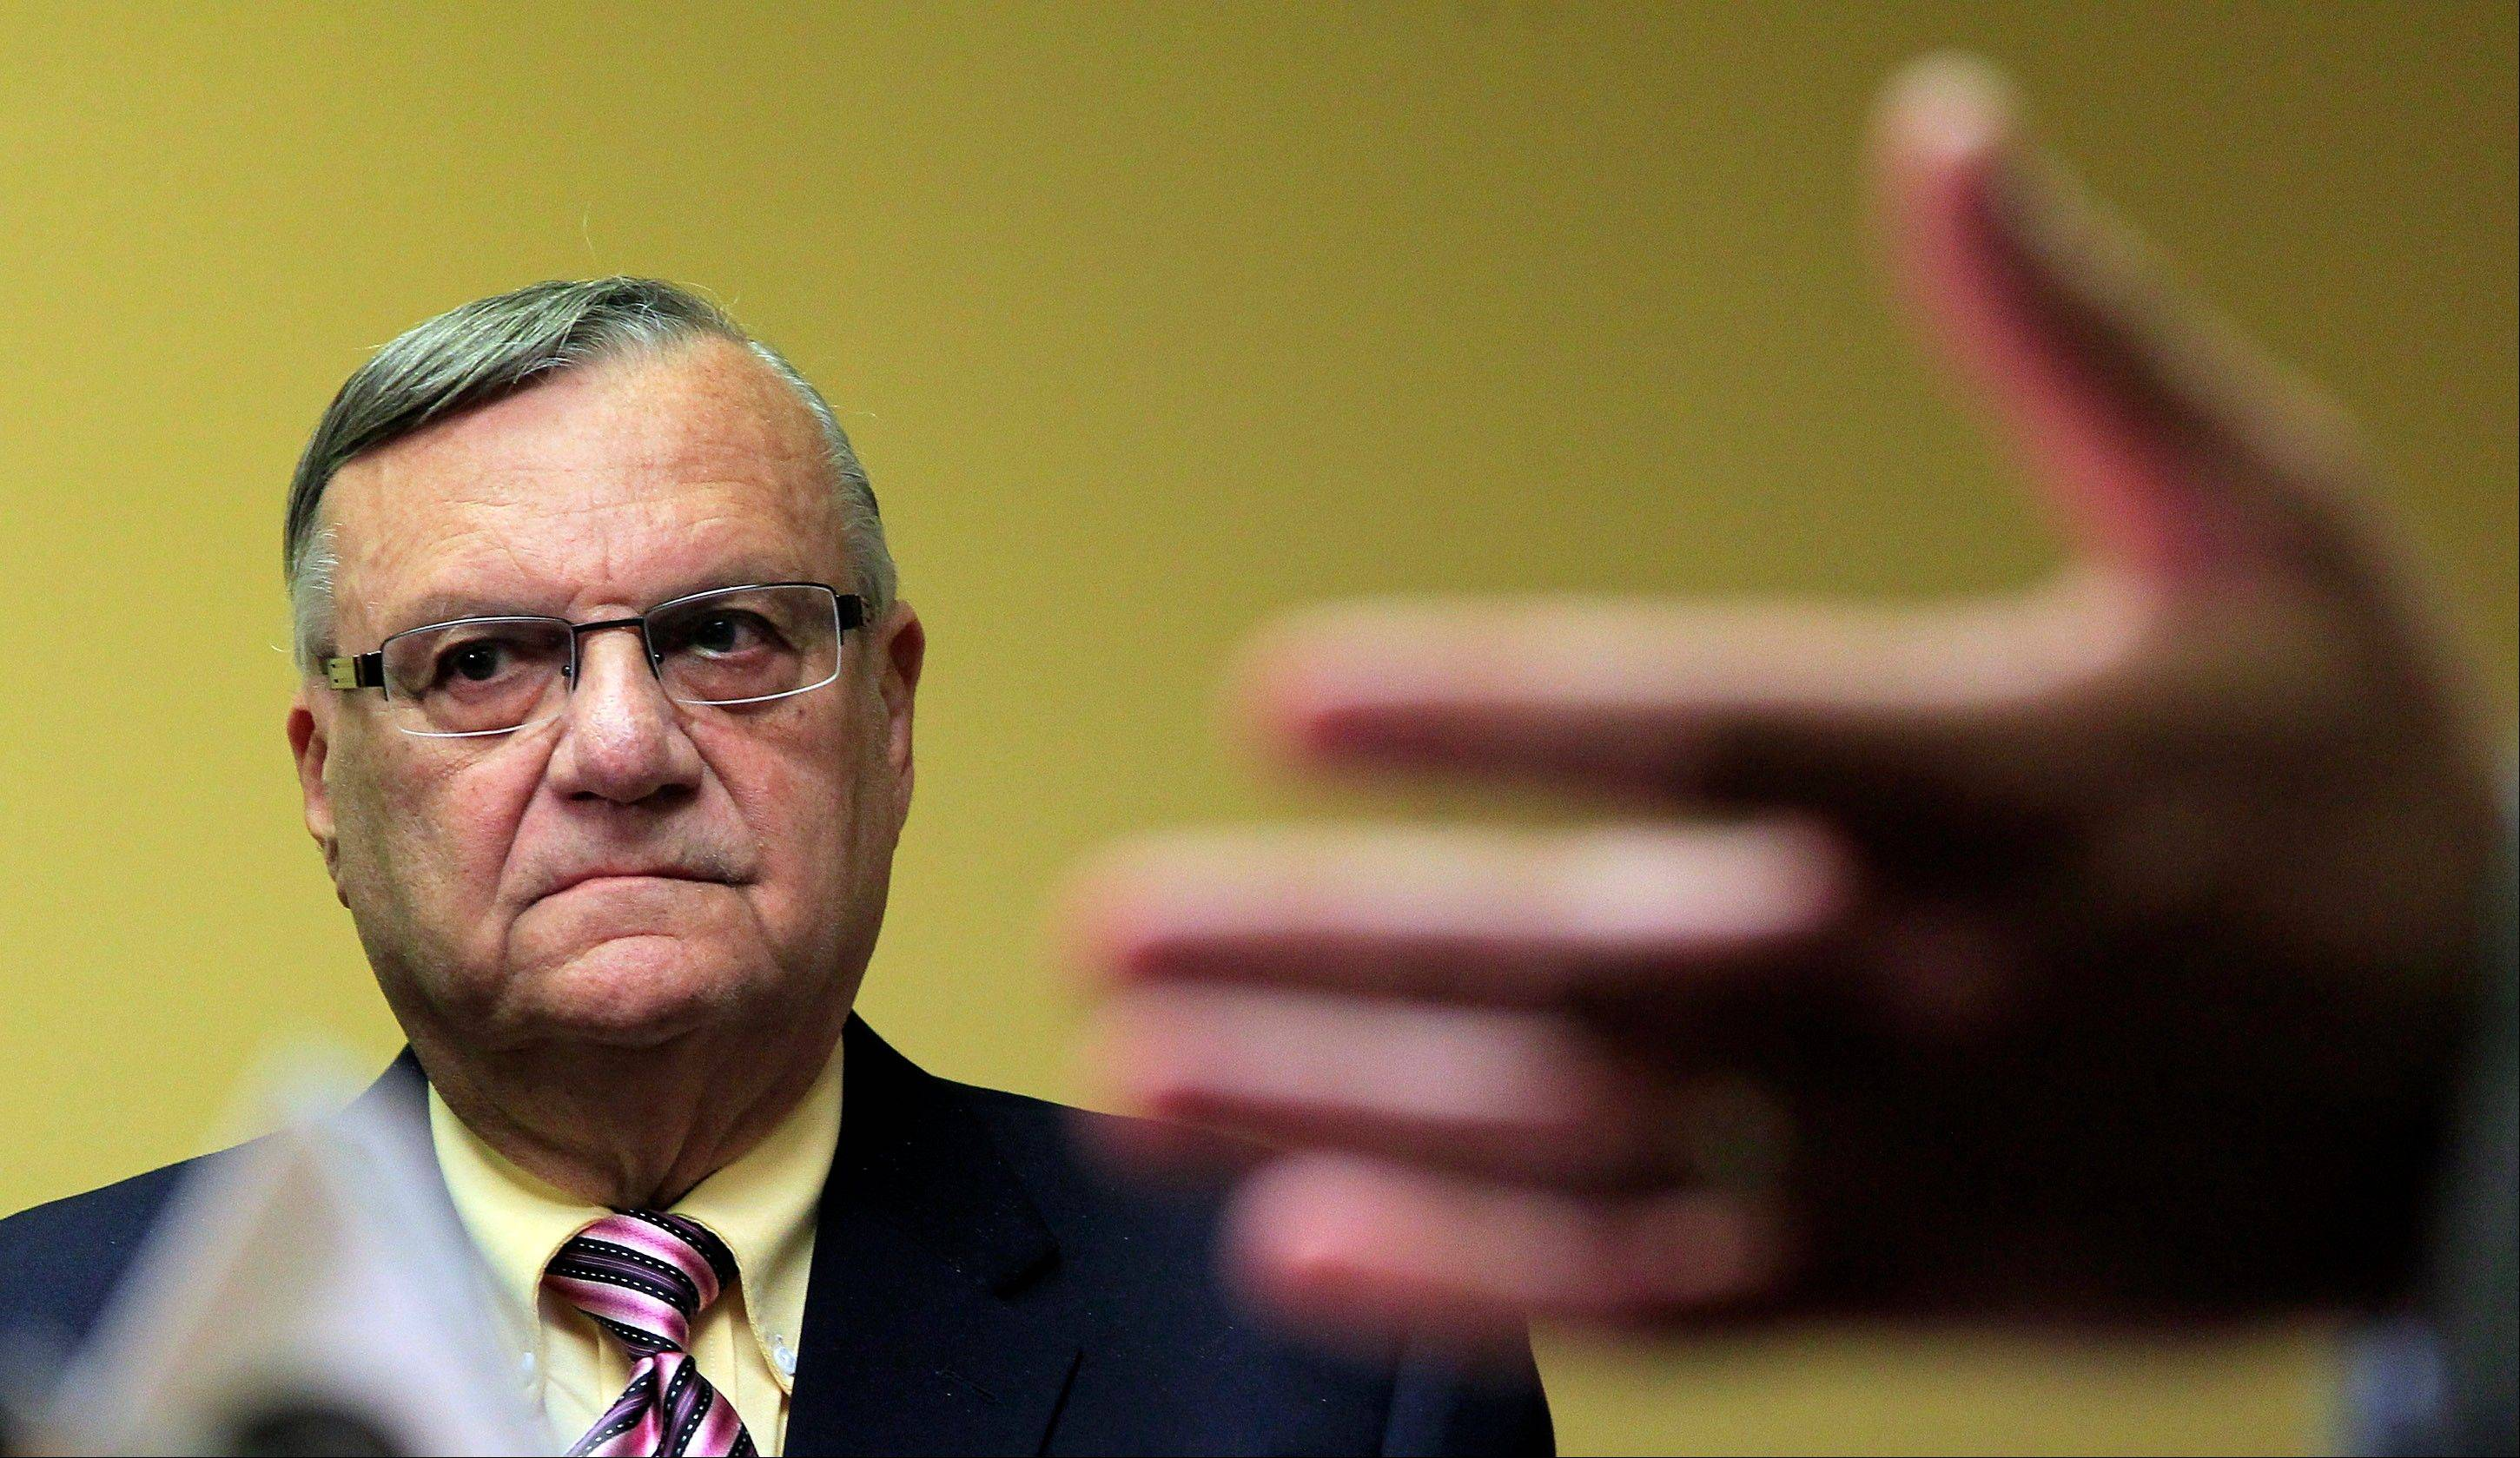 Maricopa County Sheriff Joe Arpaio, who led the way for local police across the country to take up immigration enforcement, is reconsidering his crackdowns -- and other law enforcement officials who followed his lead are expected to eventually back away, too.